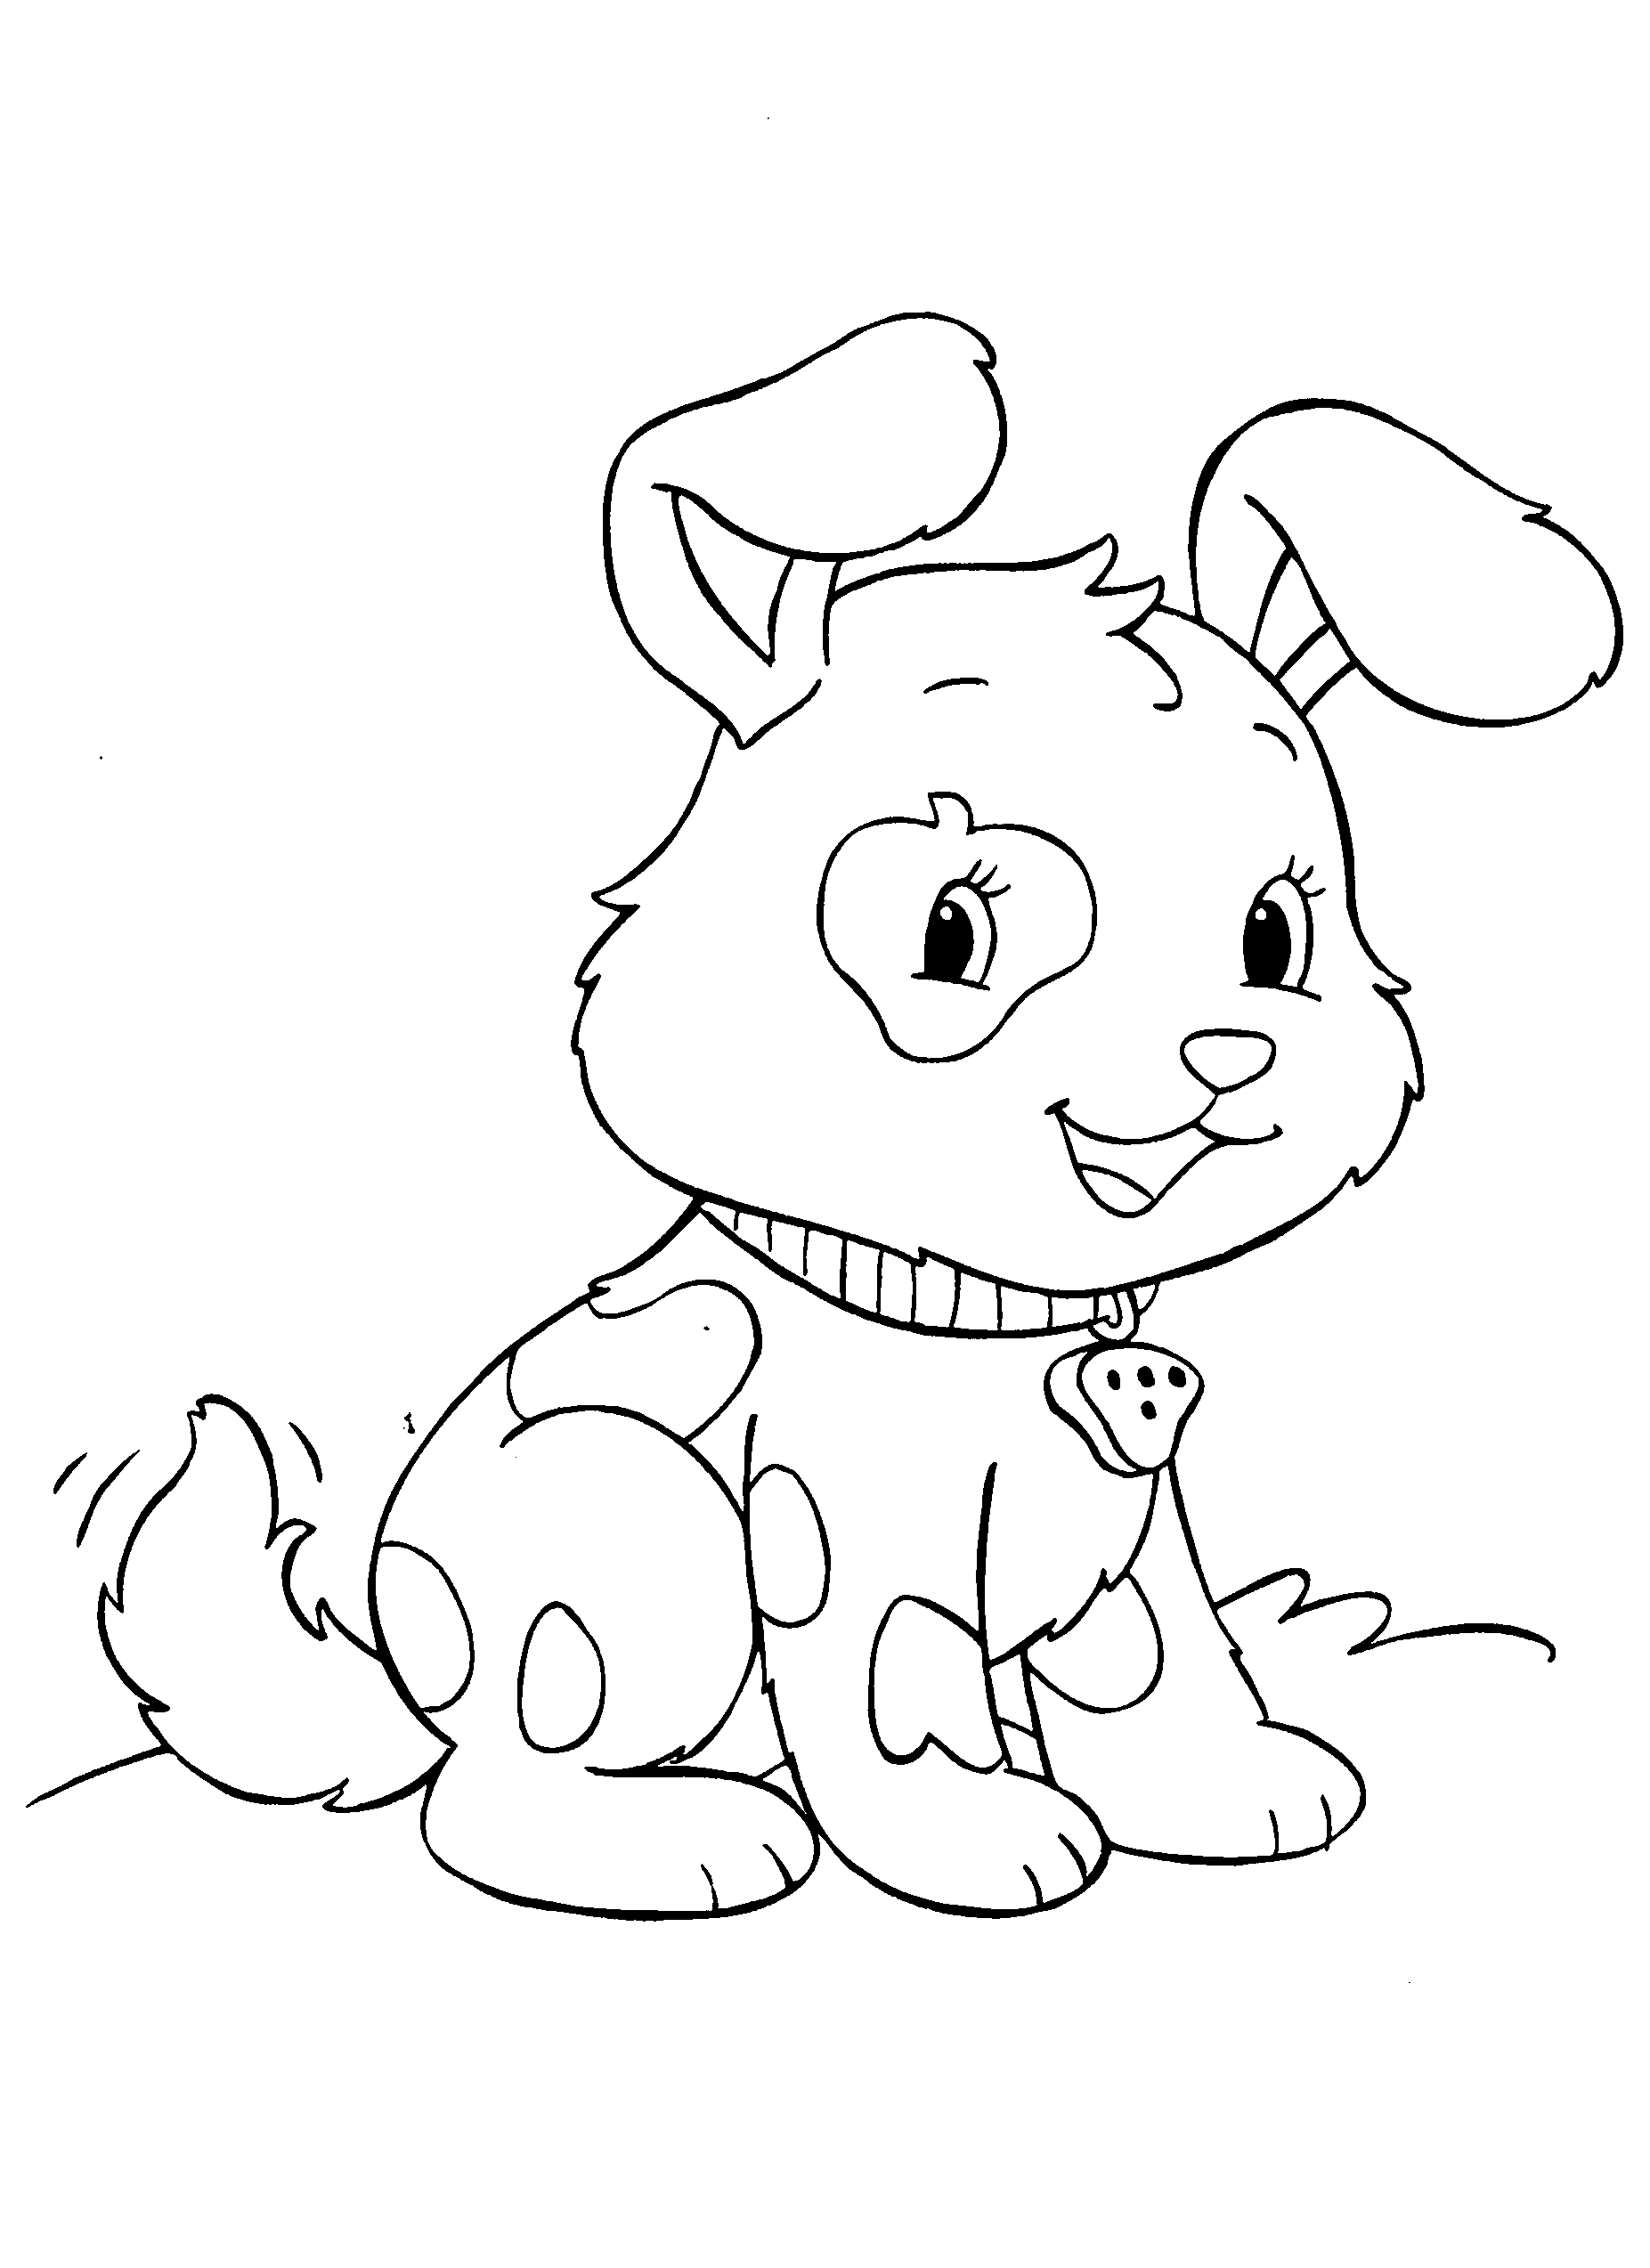 puppies coloring pages printable,printable,coloring pages